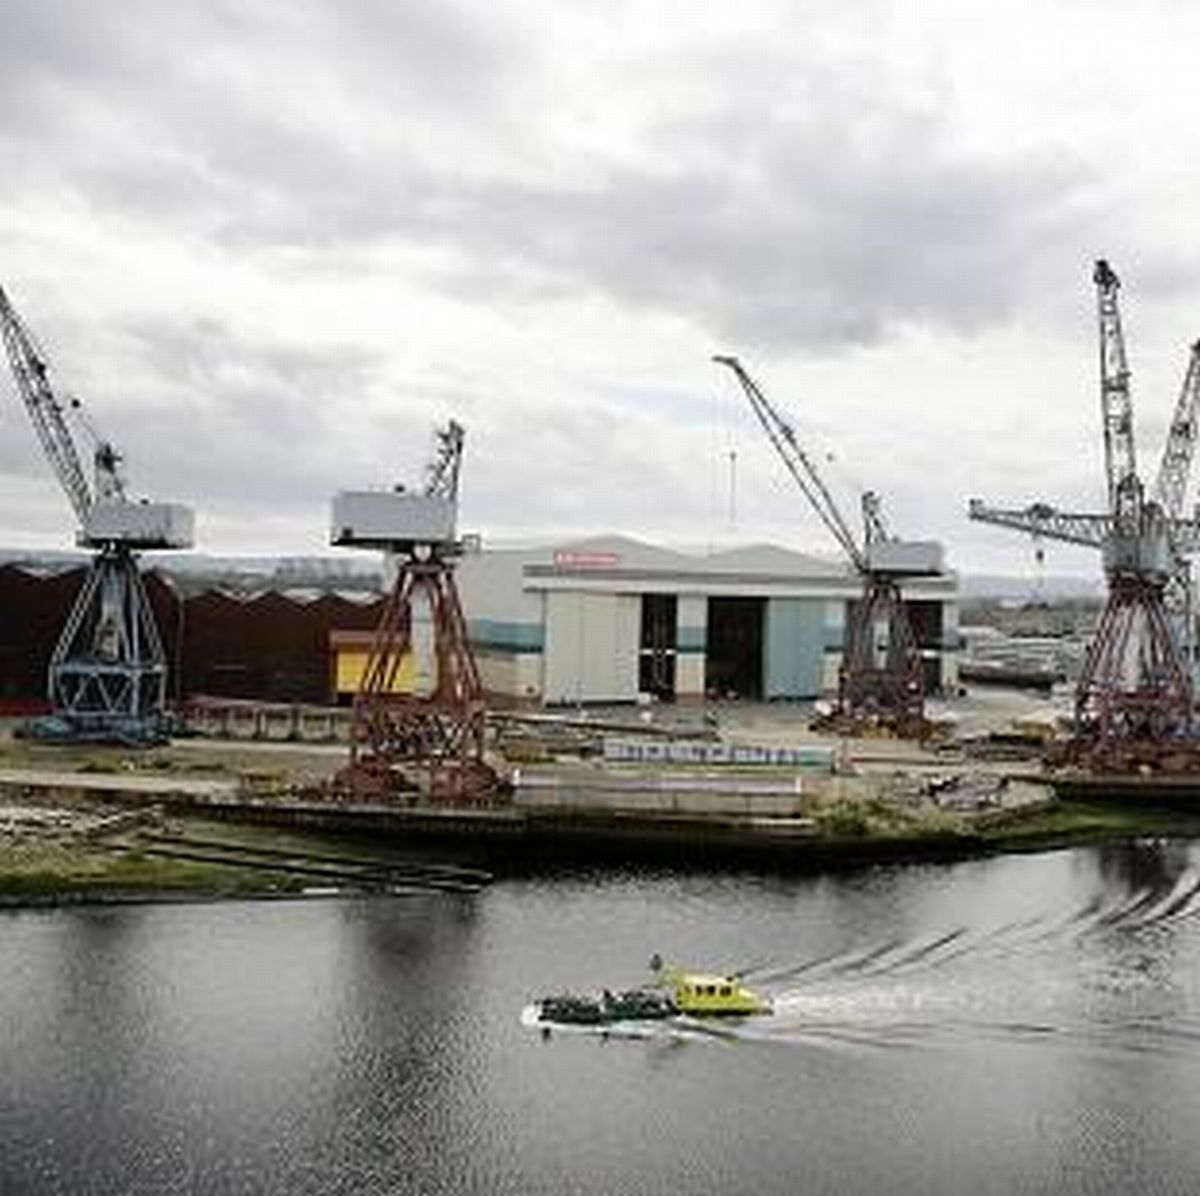 City needs help after end of shipbuilding